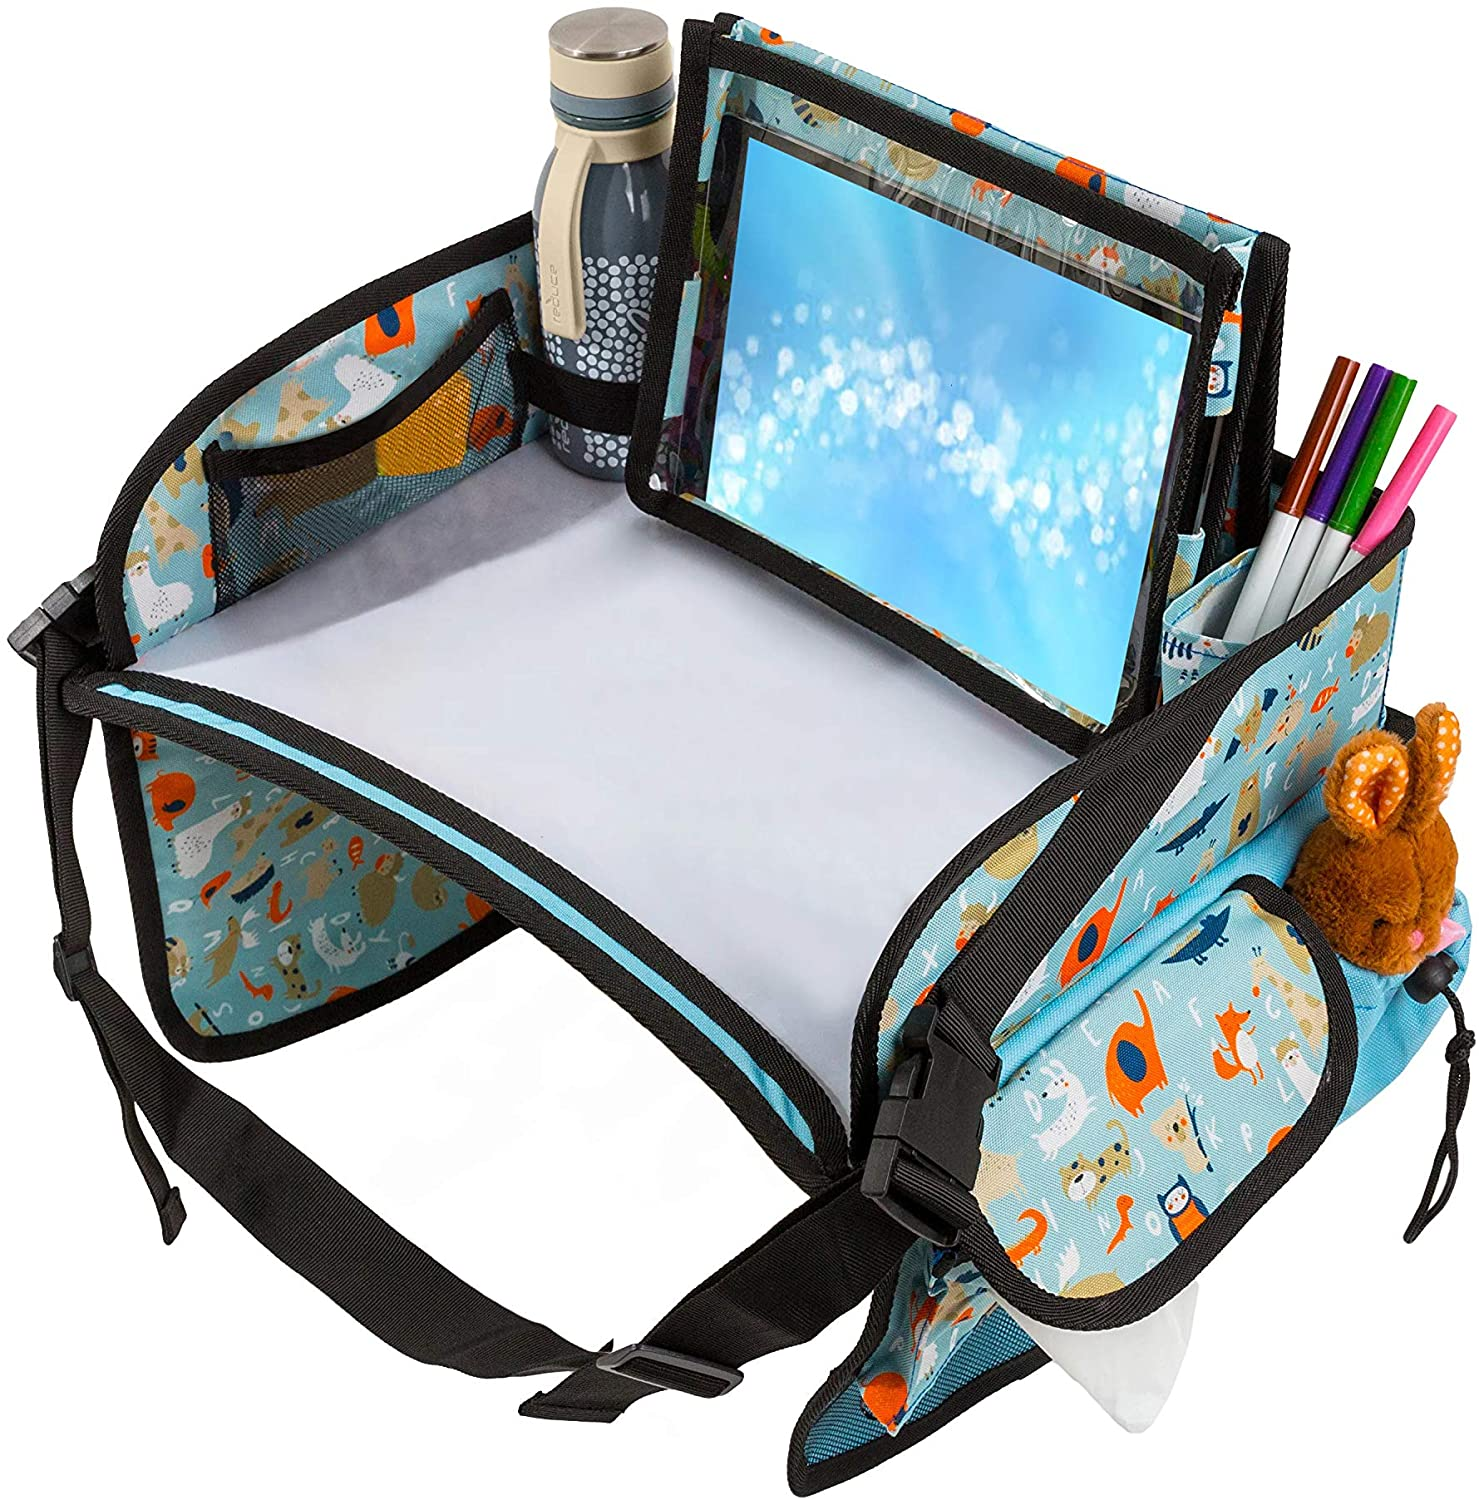 Kids Car Seat Travel Tray- Kids Car Travel Tray with Tablet Holder- Sturdy Dry Erase Board -Snack Play Draw On The Go- Lap Tray with Big Buckles- Easy Setup and Tear Down